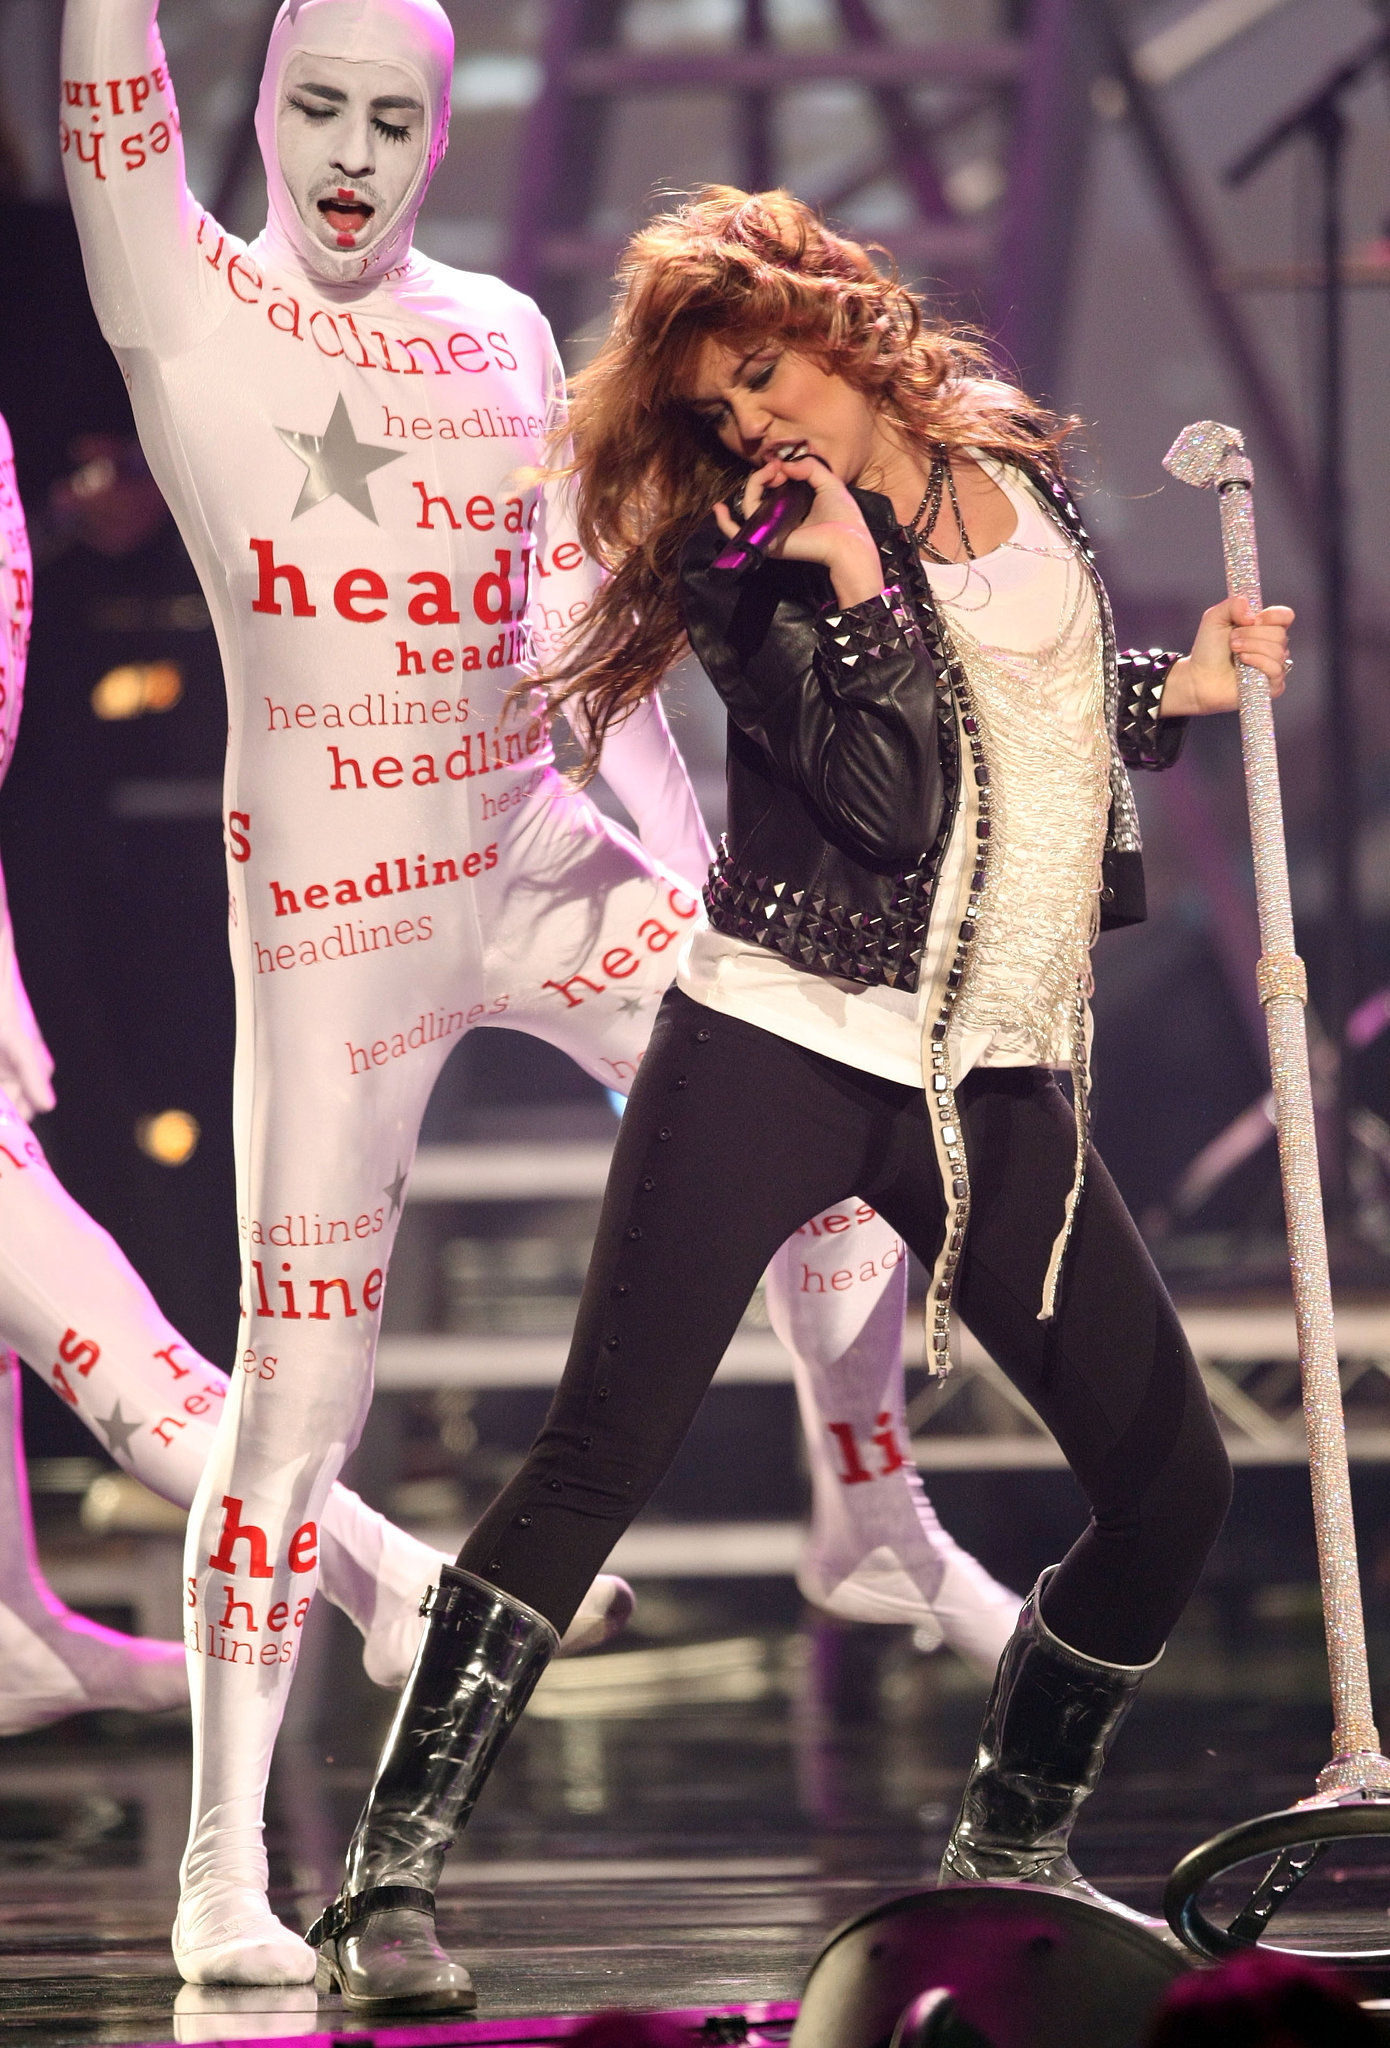 Miley Cyrus wore studded leather on stage in 2008.